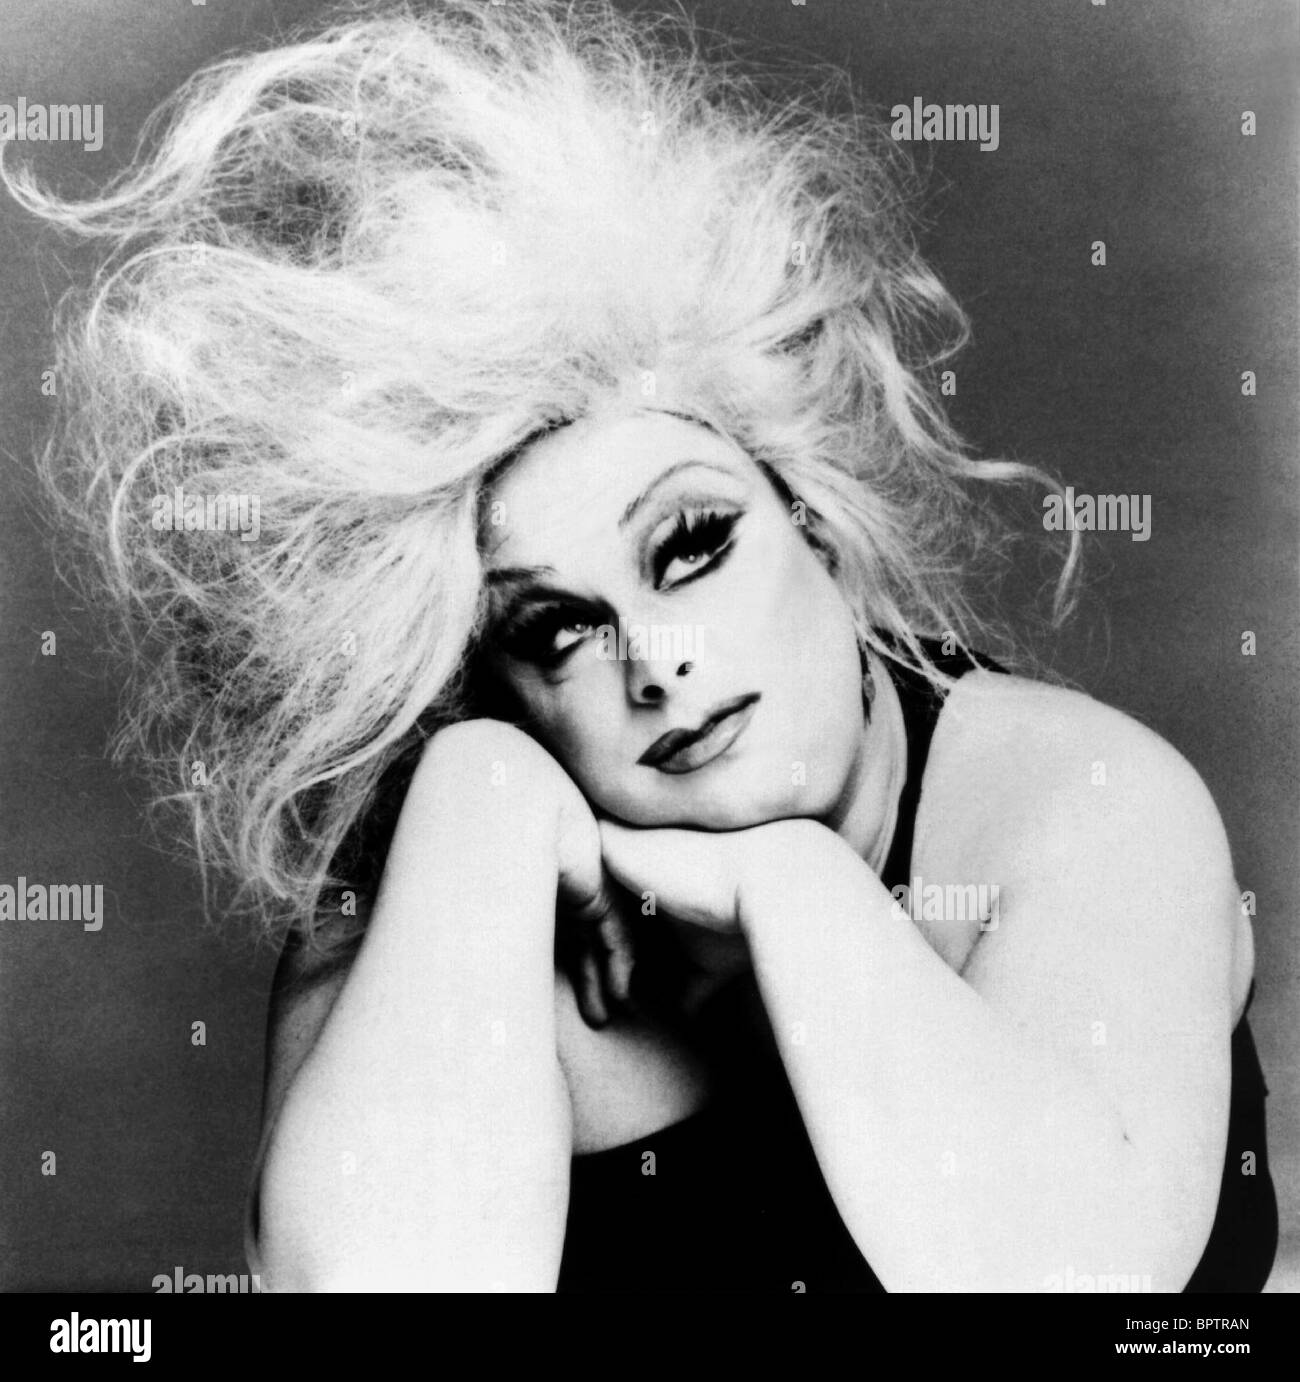 DIVINE (HARRIS GLENN MILSTEAD) ACTRESS (1982) - Stock Image